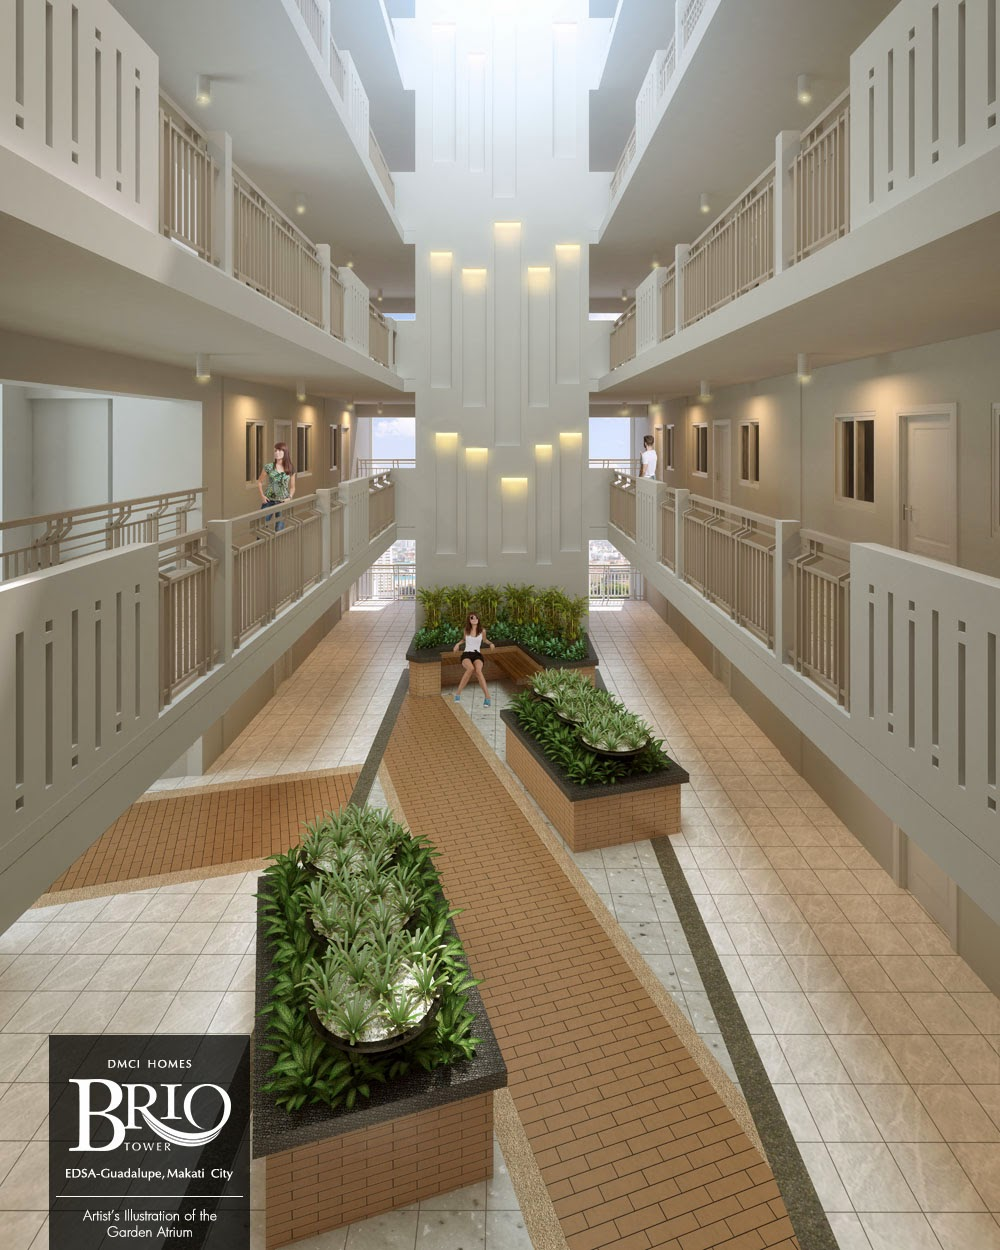 Brio Tower garden atrium